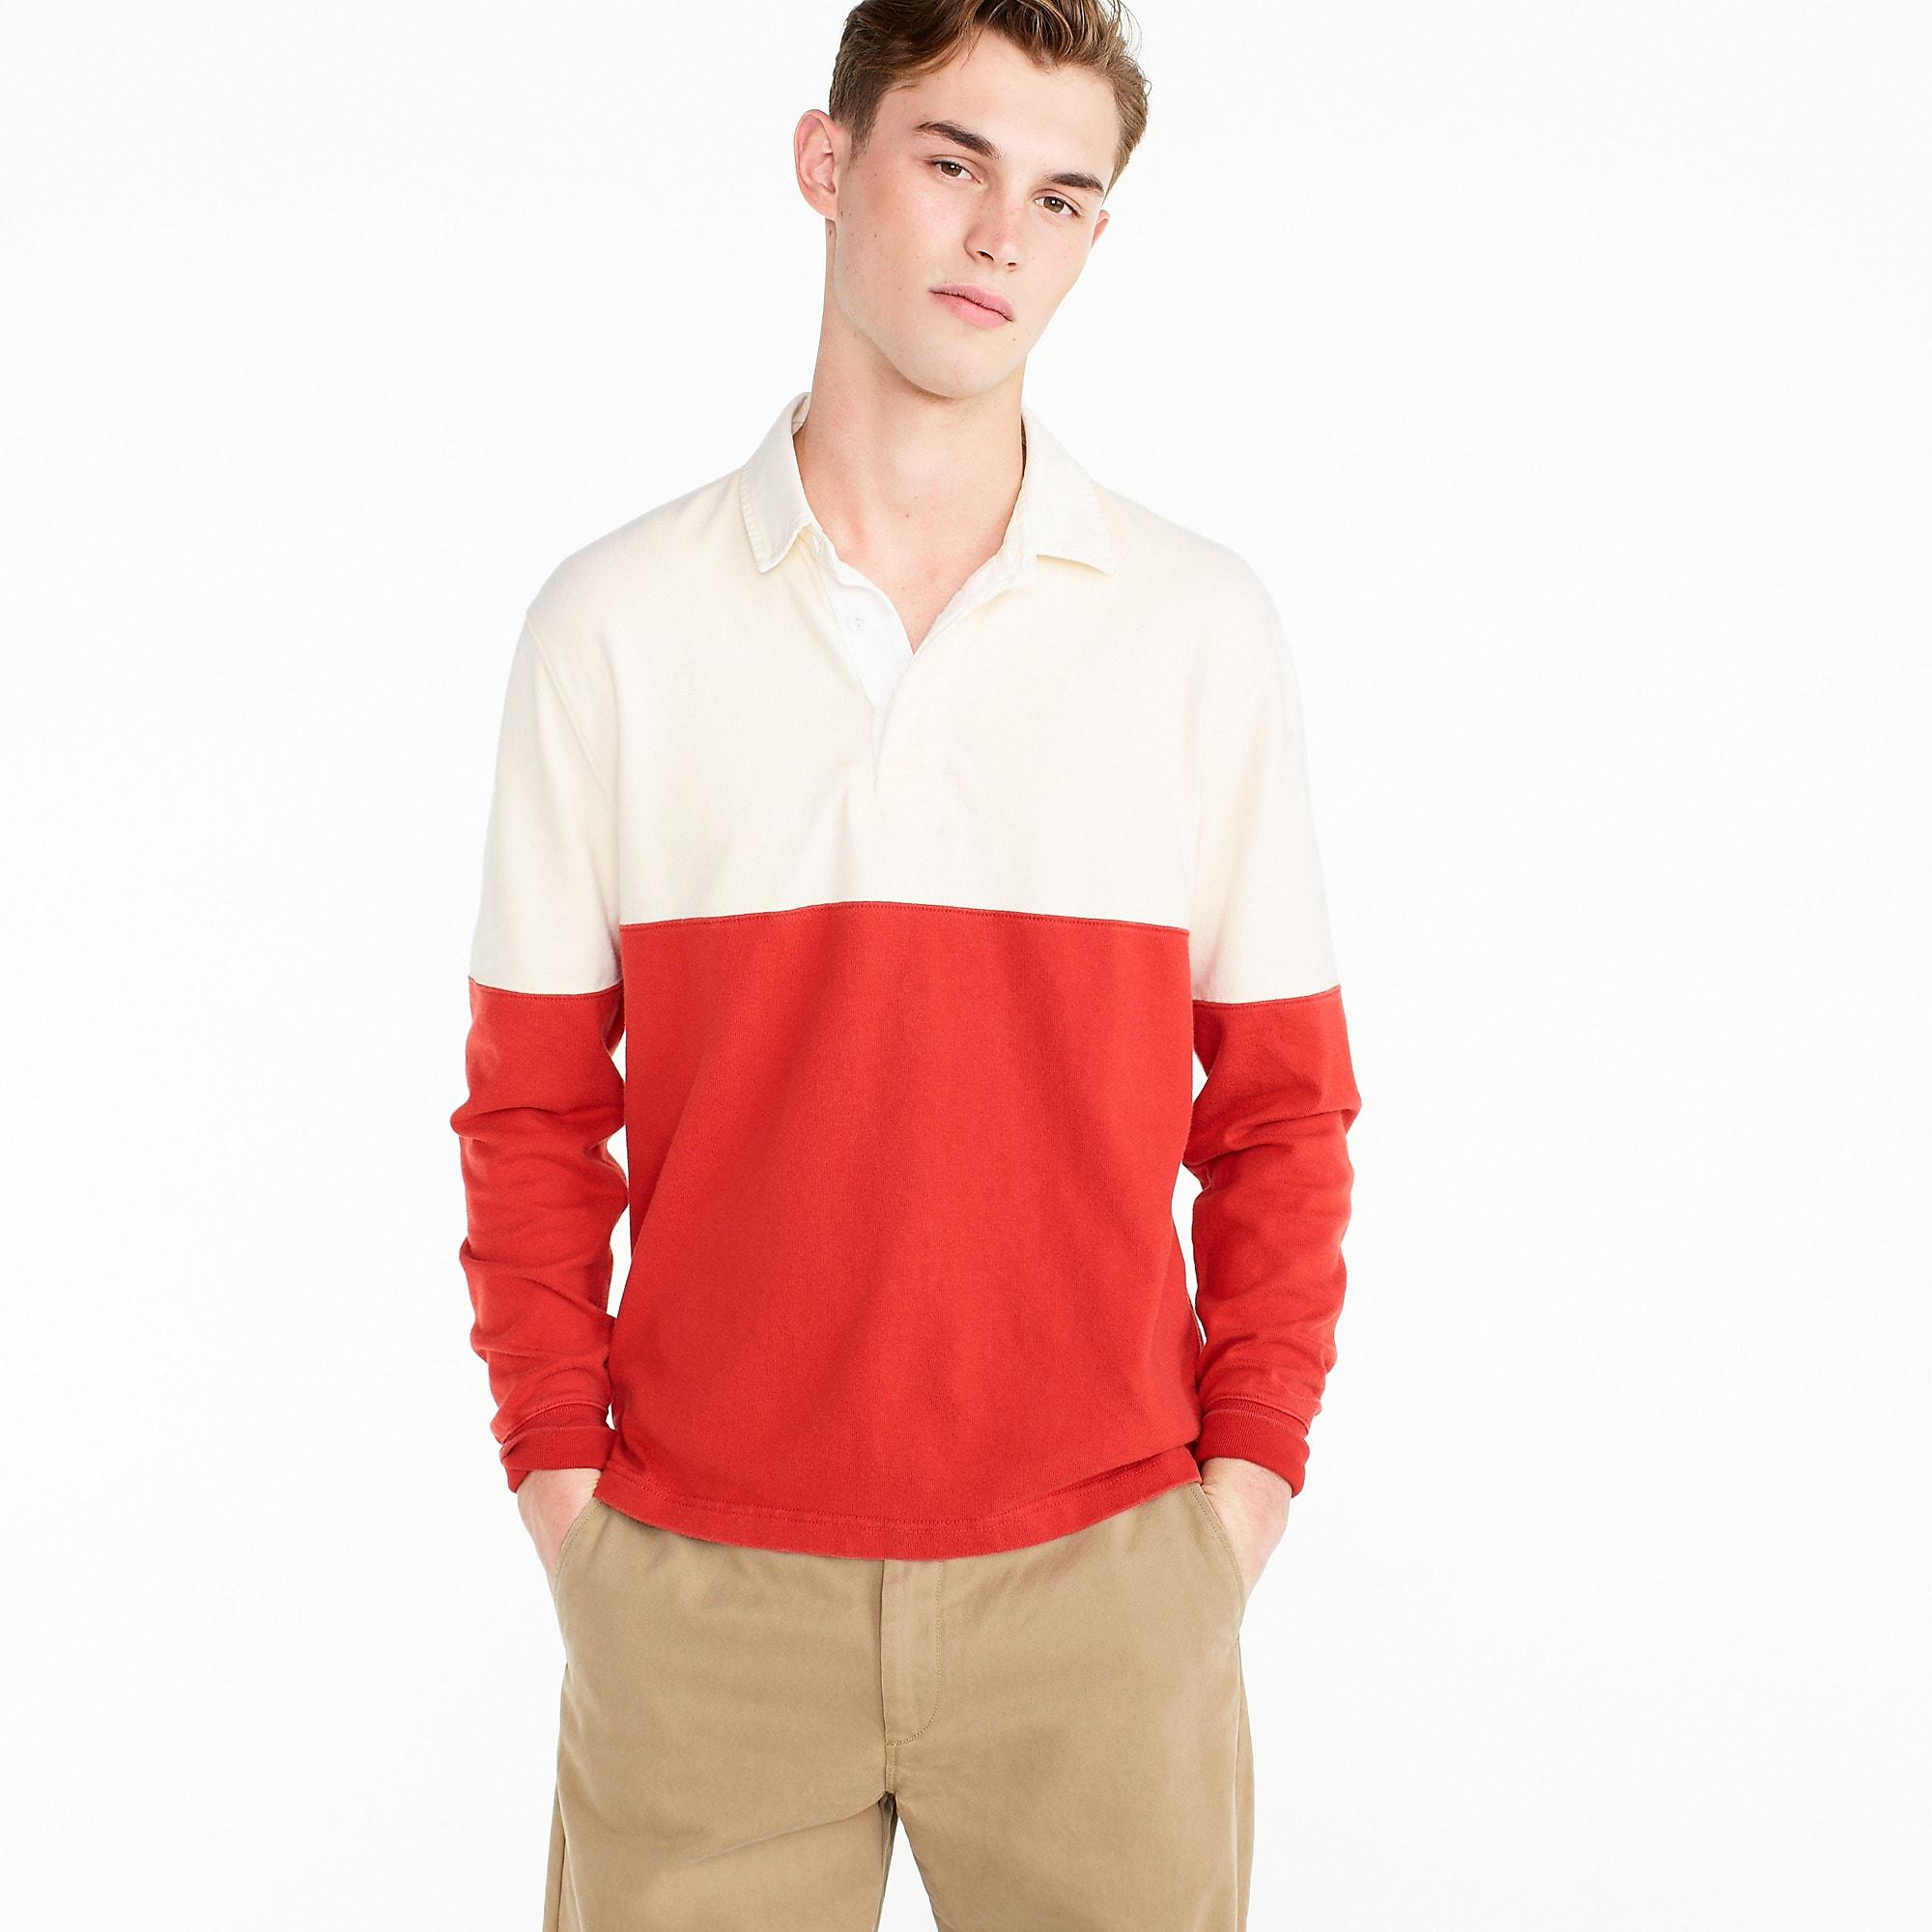 0d8a6093e90 J.Crew Unisex 1984 Rugby Shirt In Colorblock in Red for Men - Lyst